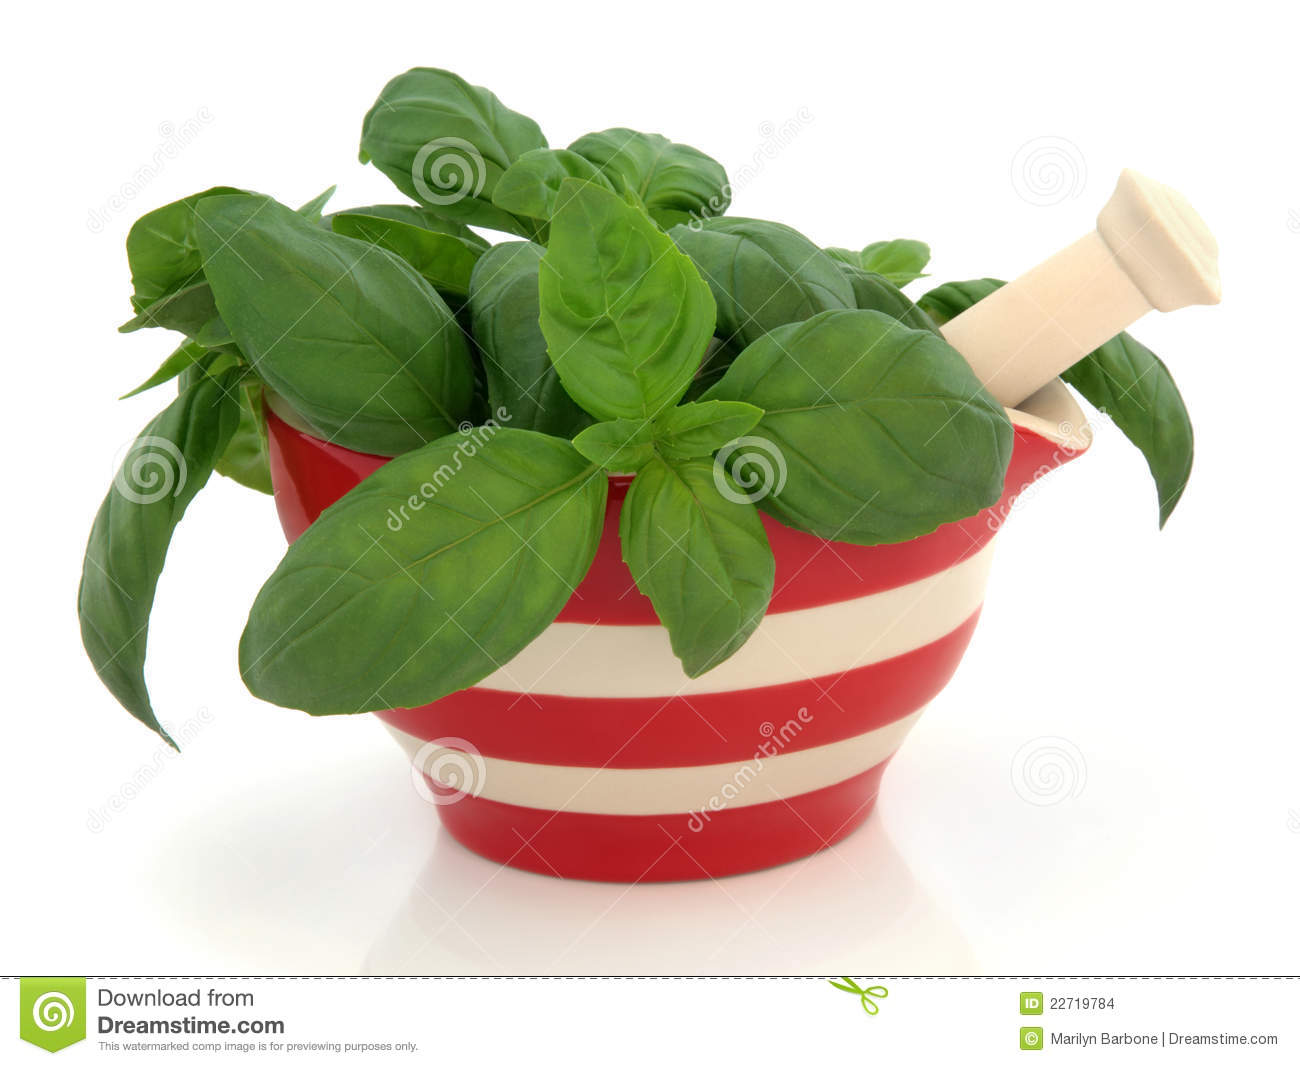 Basil Herb Leaf Sprigs In A Red And Cream Striped Mortar With Pestle